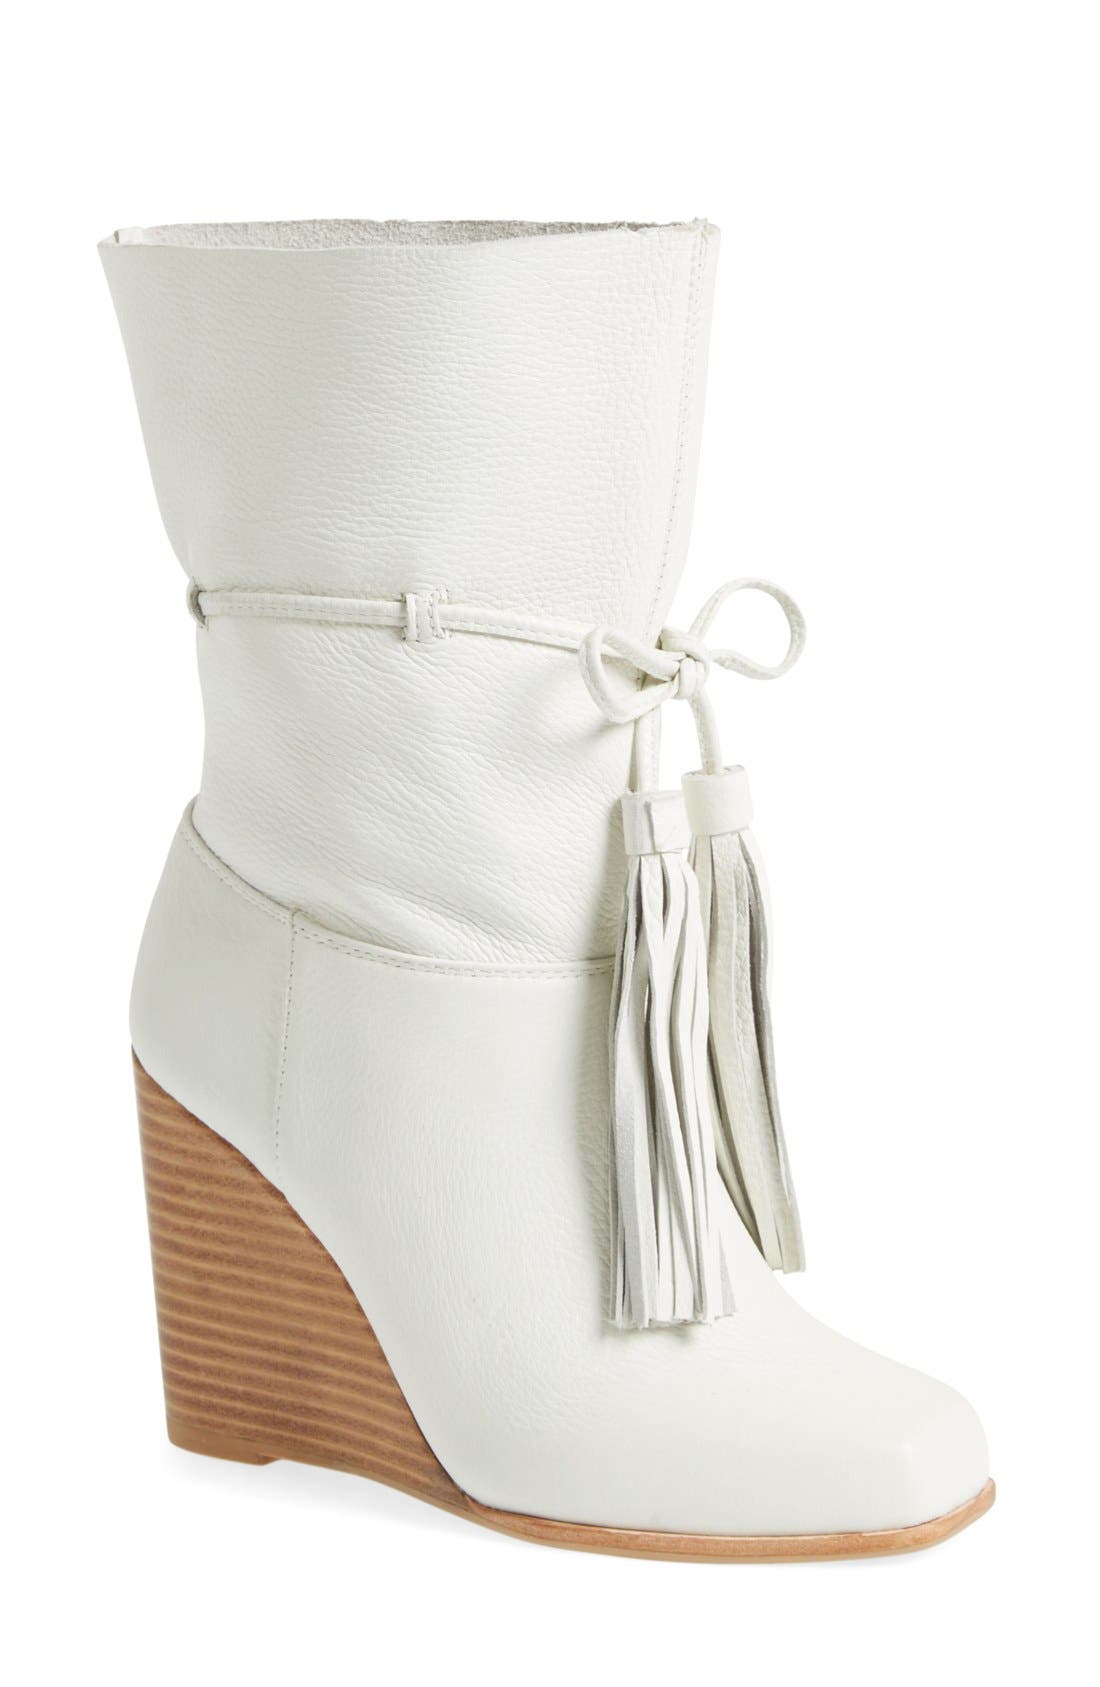 Alternate Image 1 Selected - Jeffrey Campbell 'Larusso' Wedge Tassel Boot (Women)